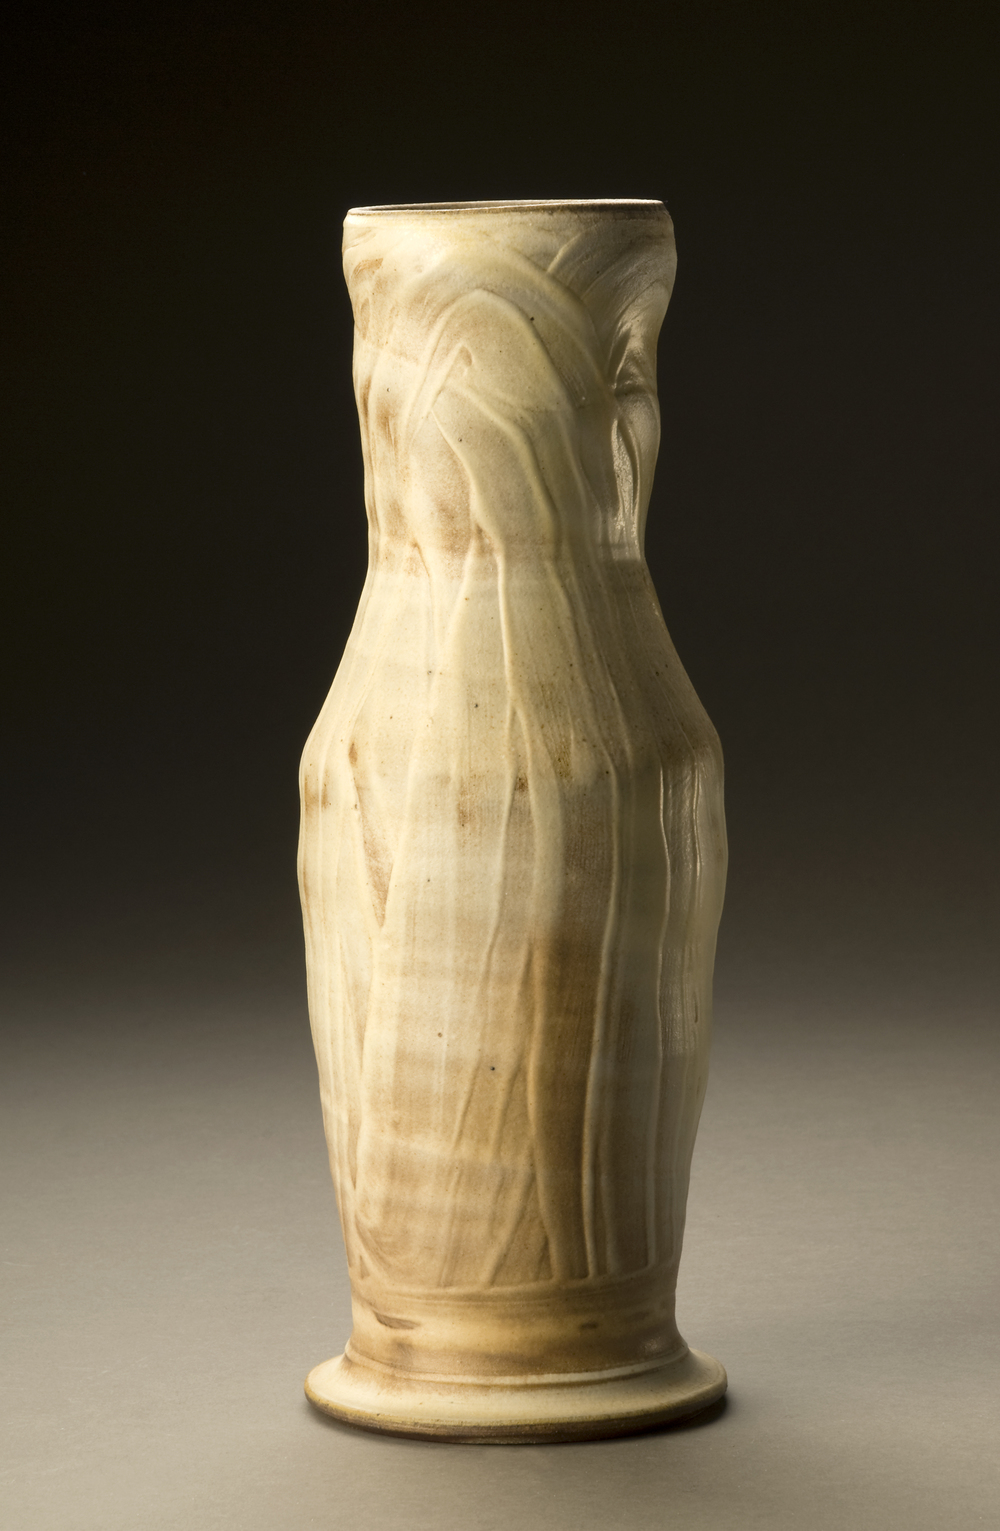 Woodfired Vase, Porcelain Slip and Natural Ash